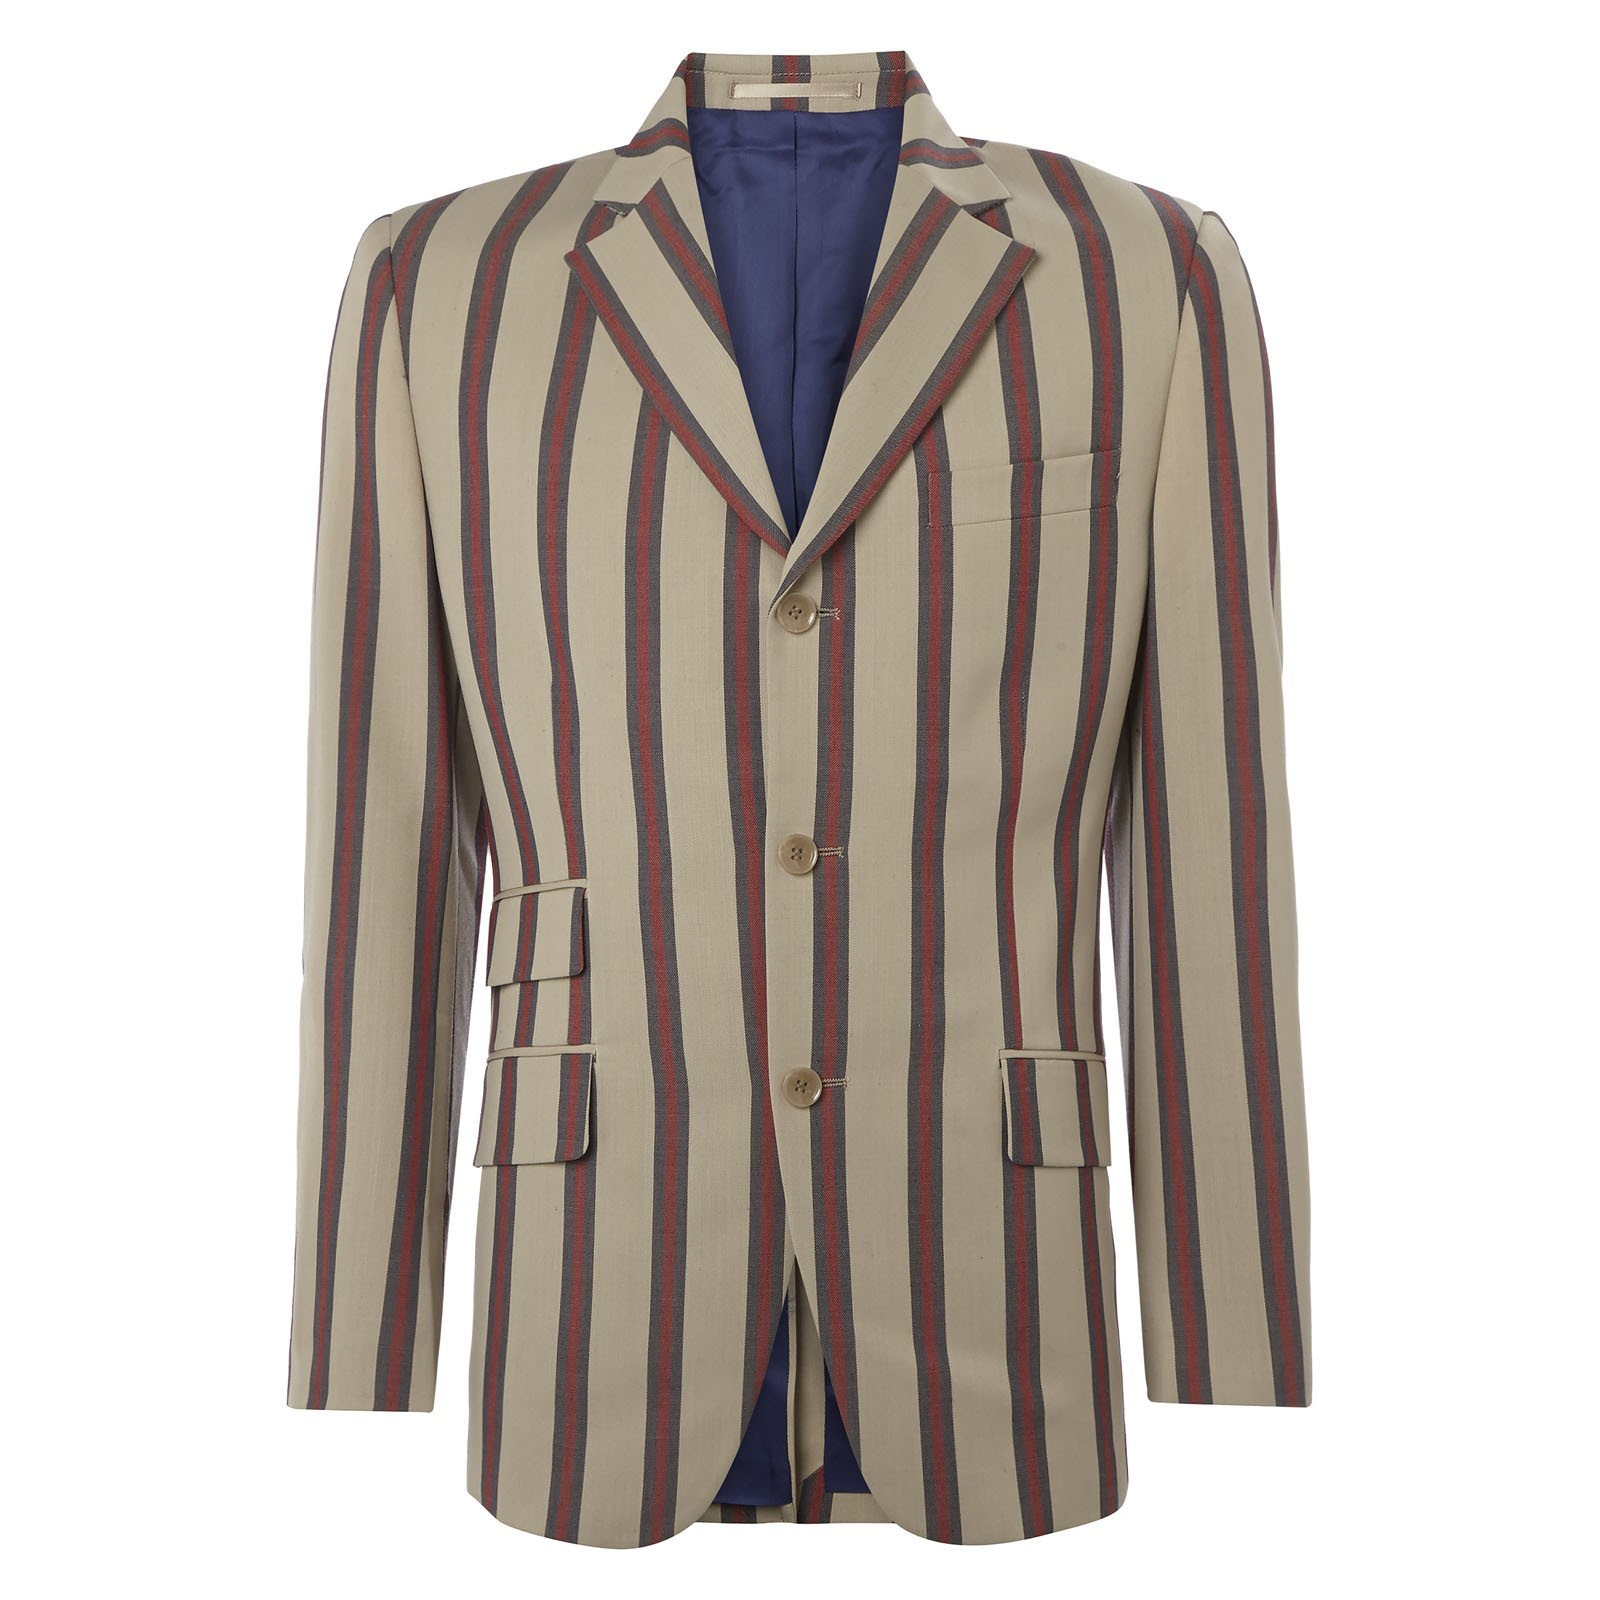 Mens Blazers The most versatile jacket you could have in your wardrobe is the iconic men's blazer. From a night out, to a day at the races, this smart casual staple will always keep you looking dapper.